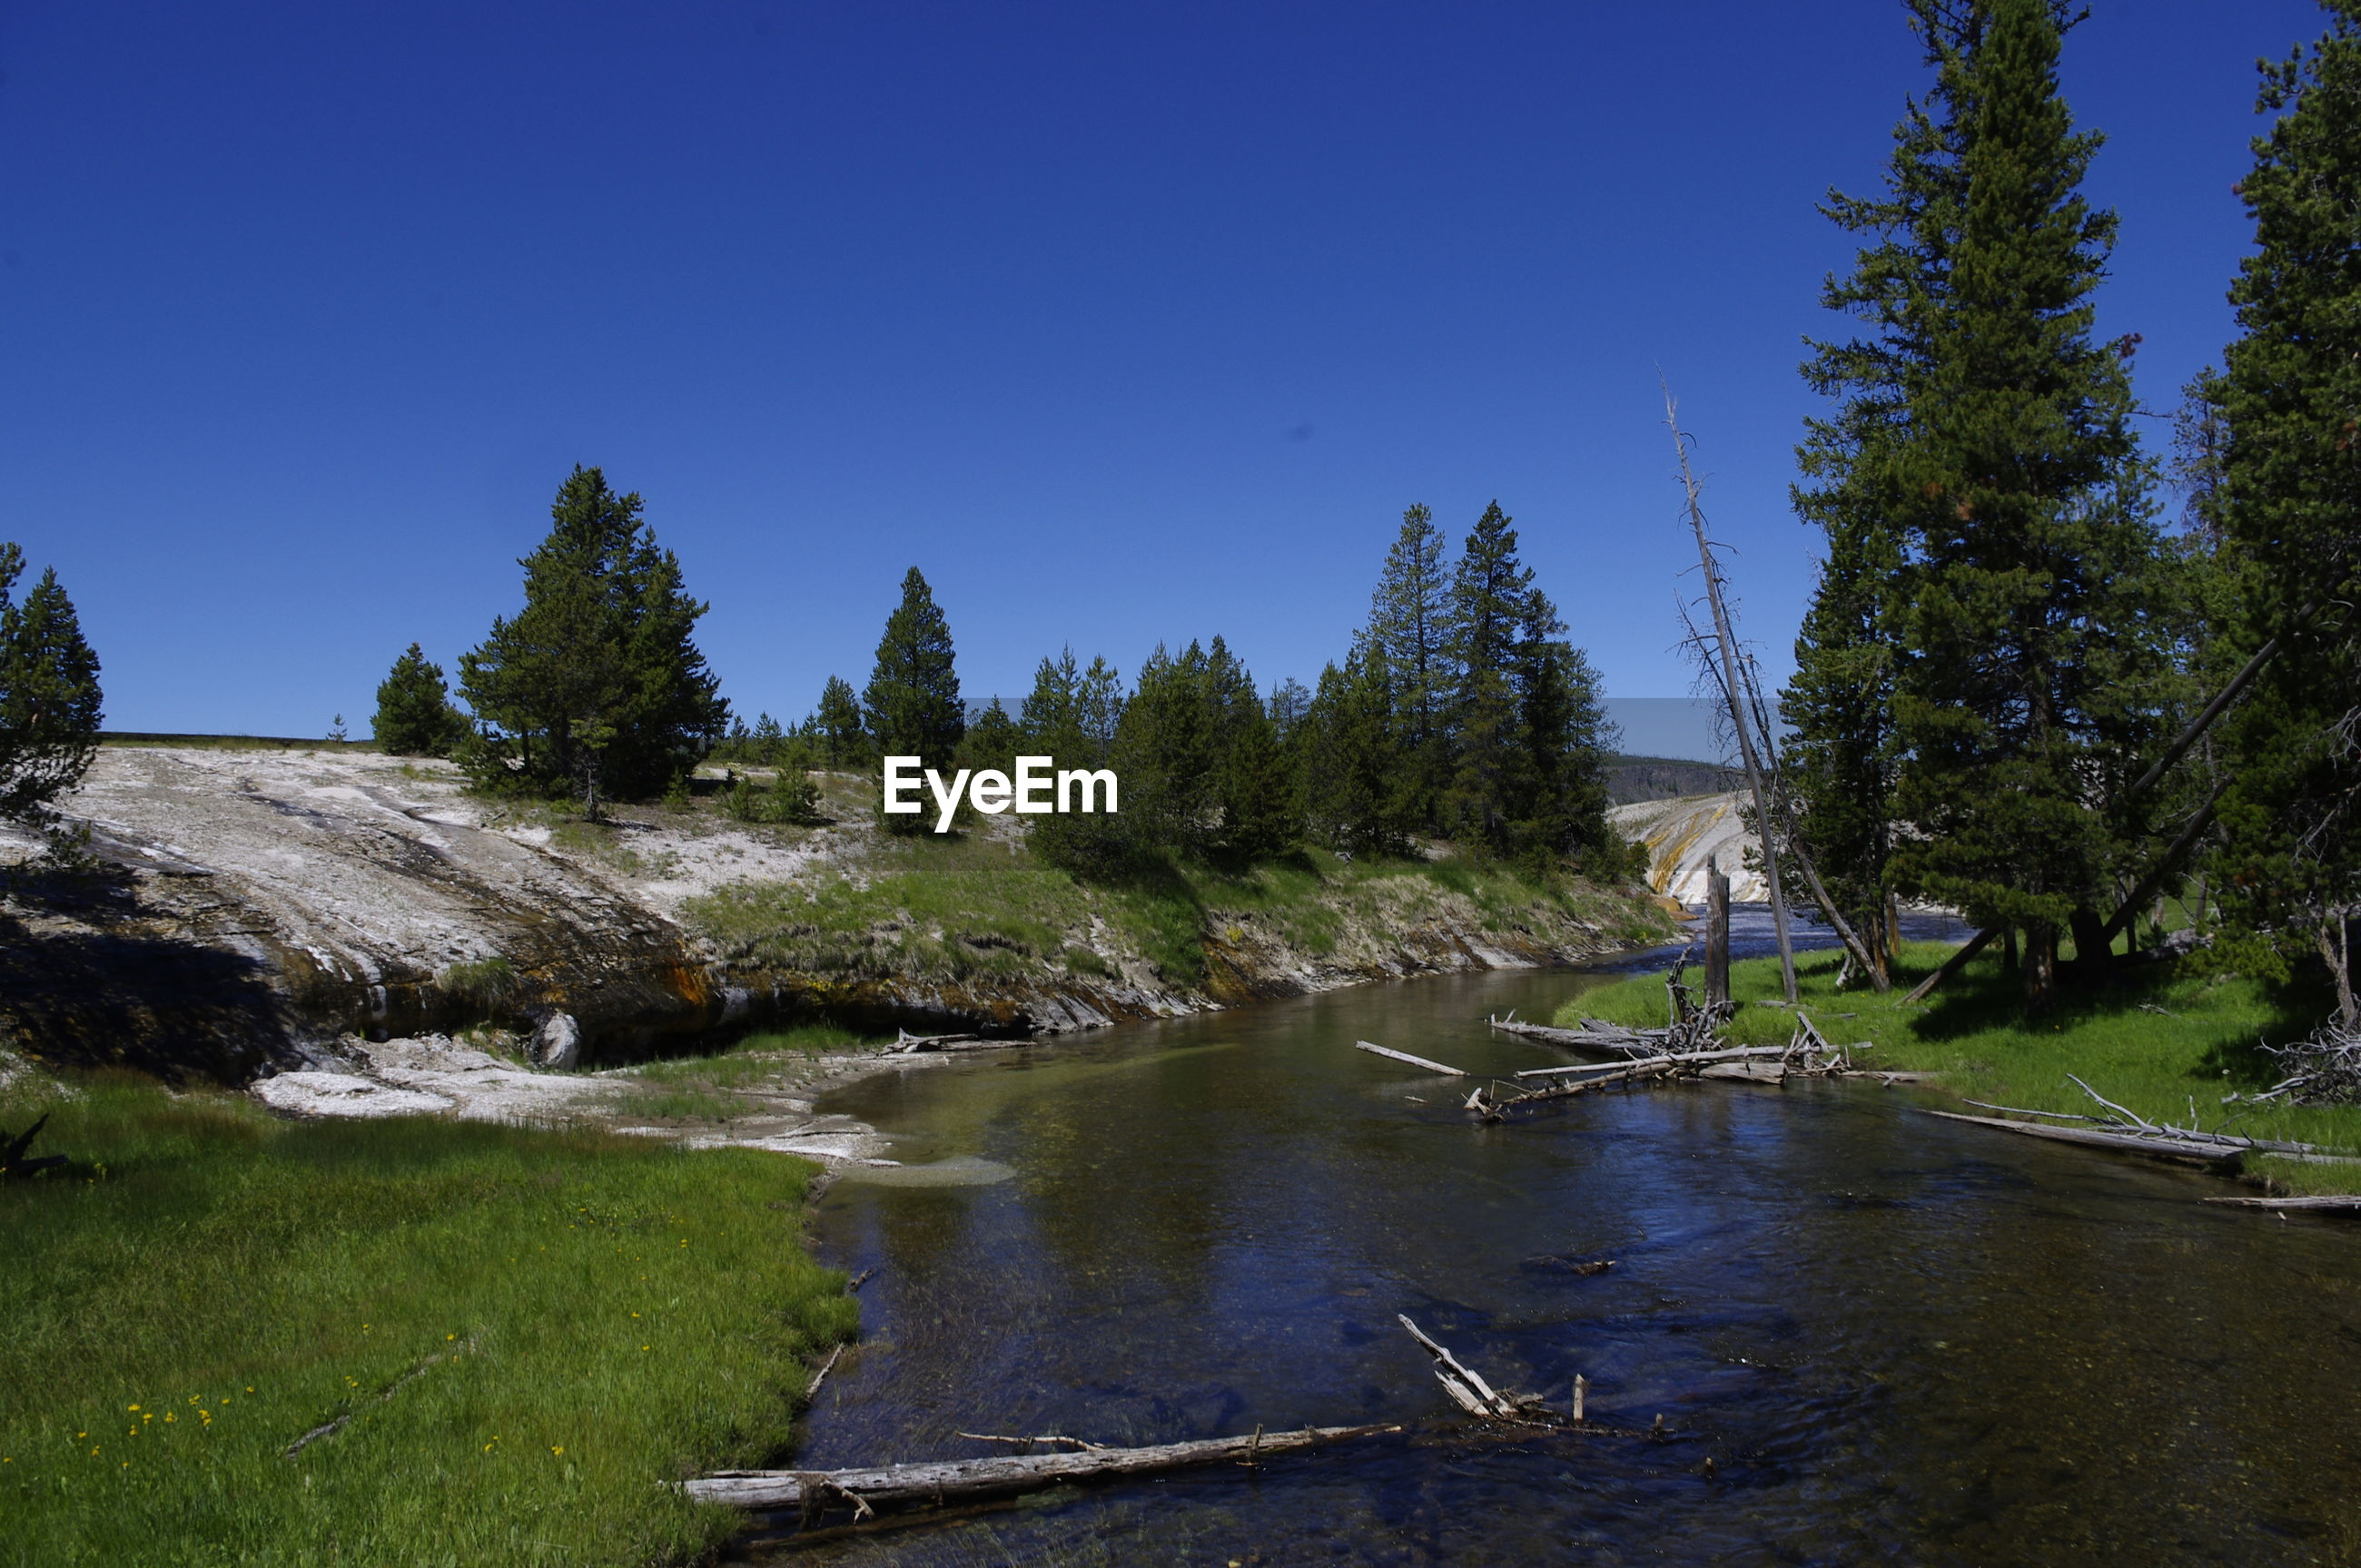 SCENIC VIEW OF RIVER AMIDST TREES IN FOREST AGAINST CLEAR BLUE SKY